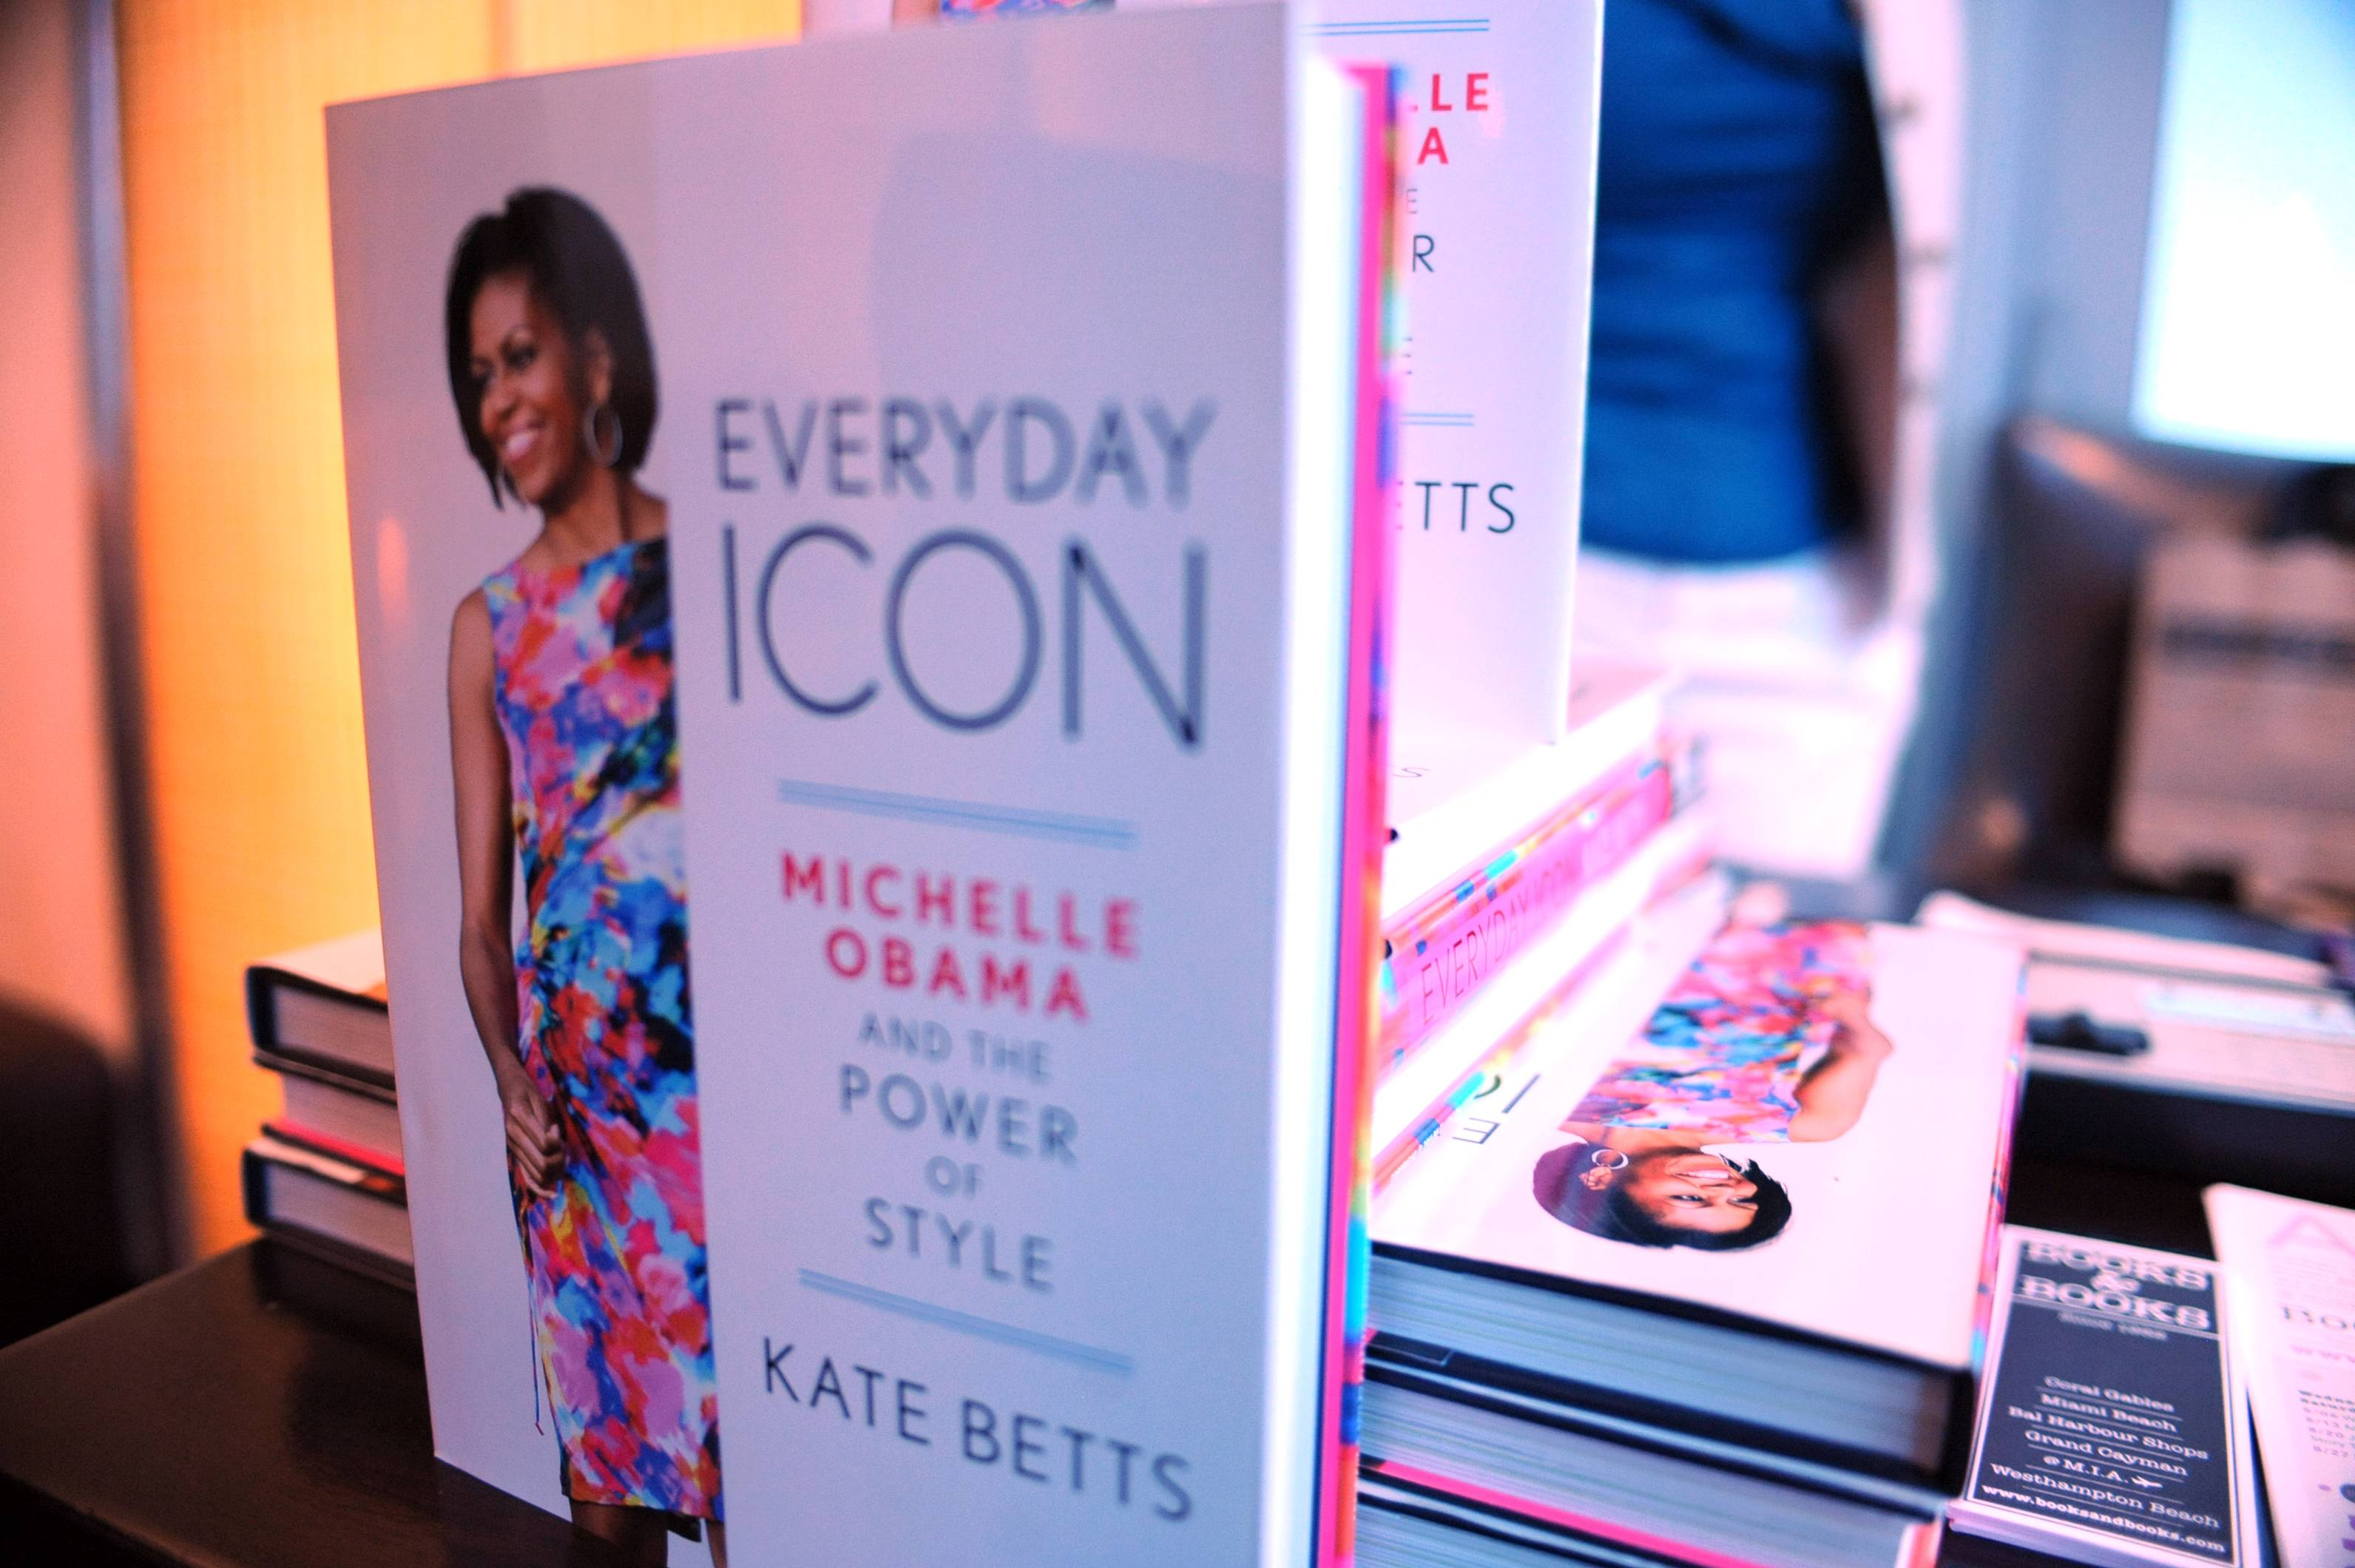 Everyday Icon, Michelle Obama and the Power of Style